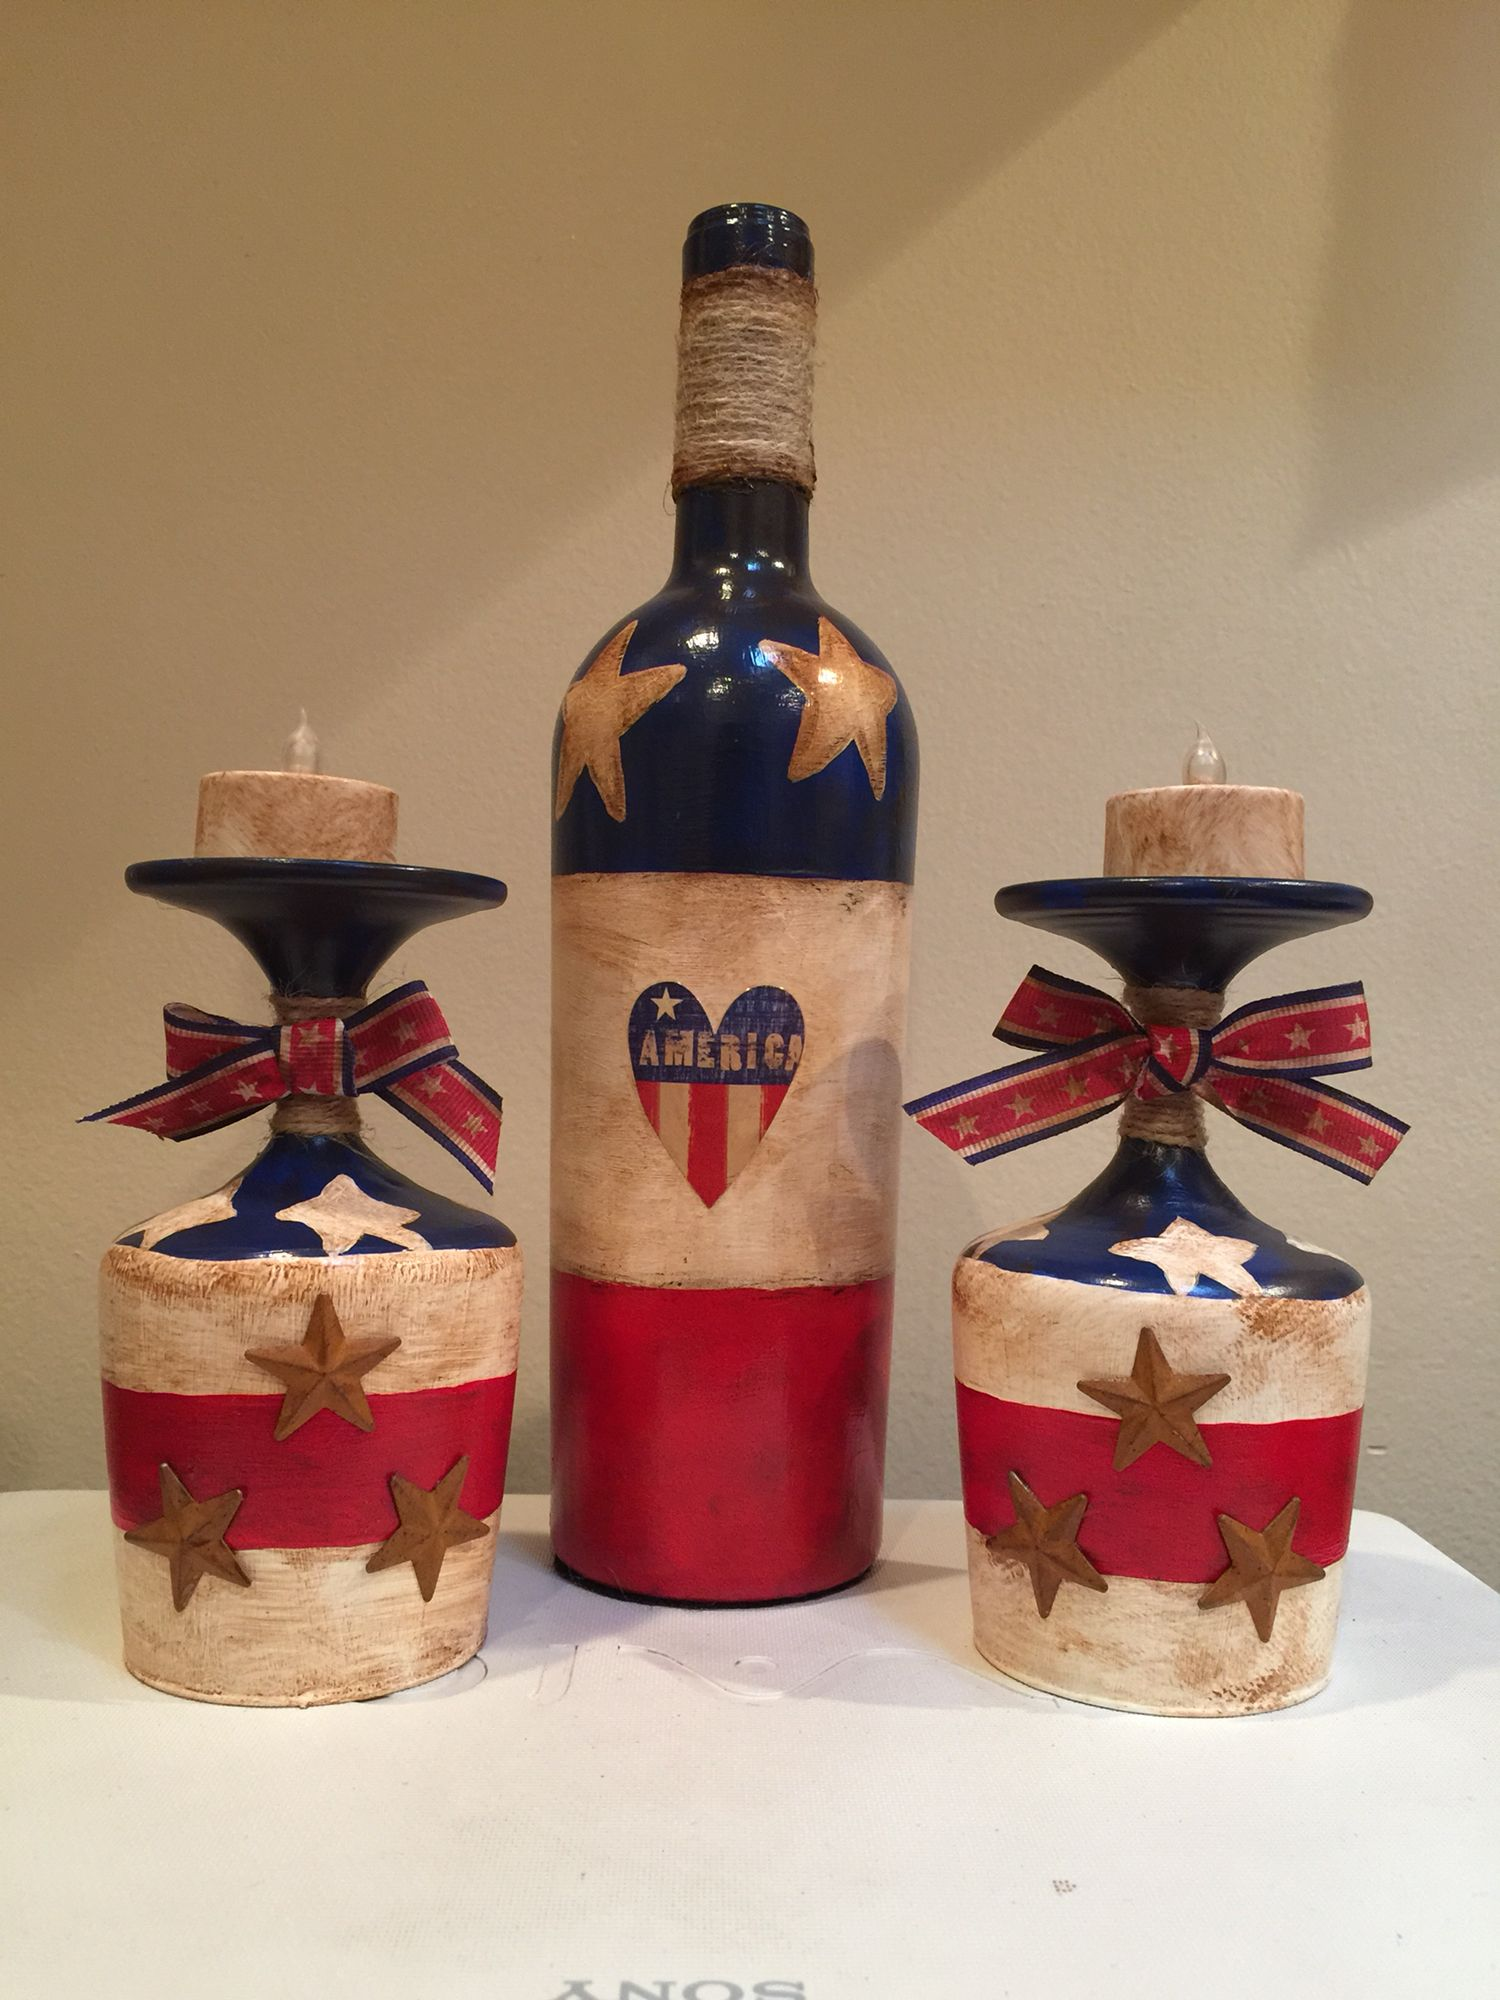 Hand painted wine bottle and candle holders. 4th of July decorations